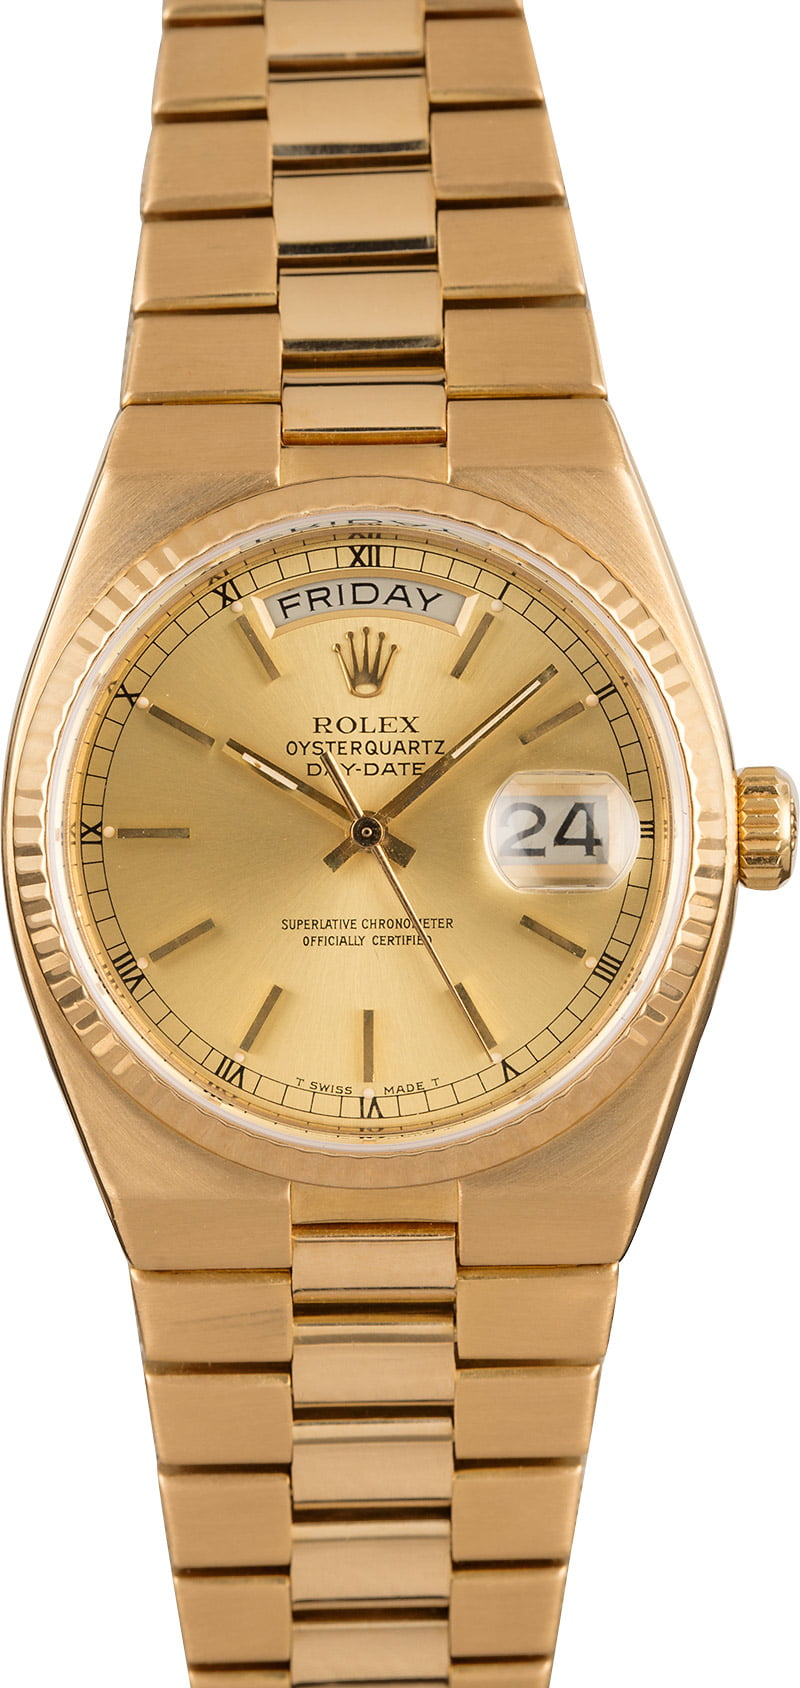 The Official Rolex Day-Date Oysterquartz Reference Guide